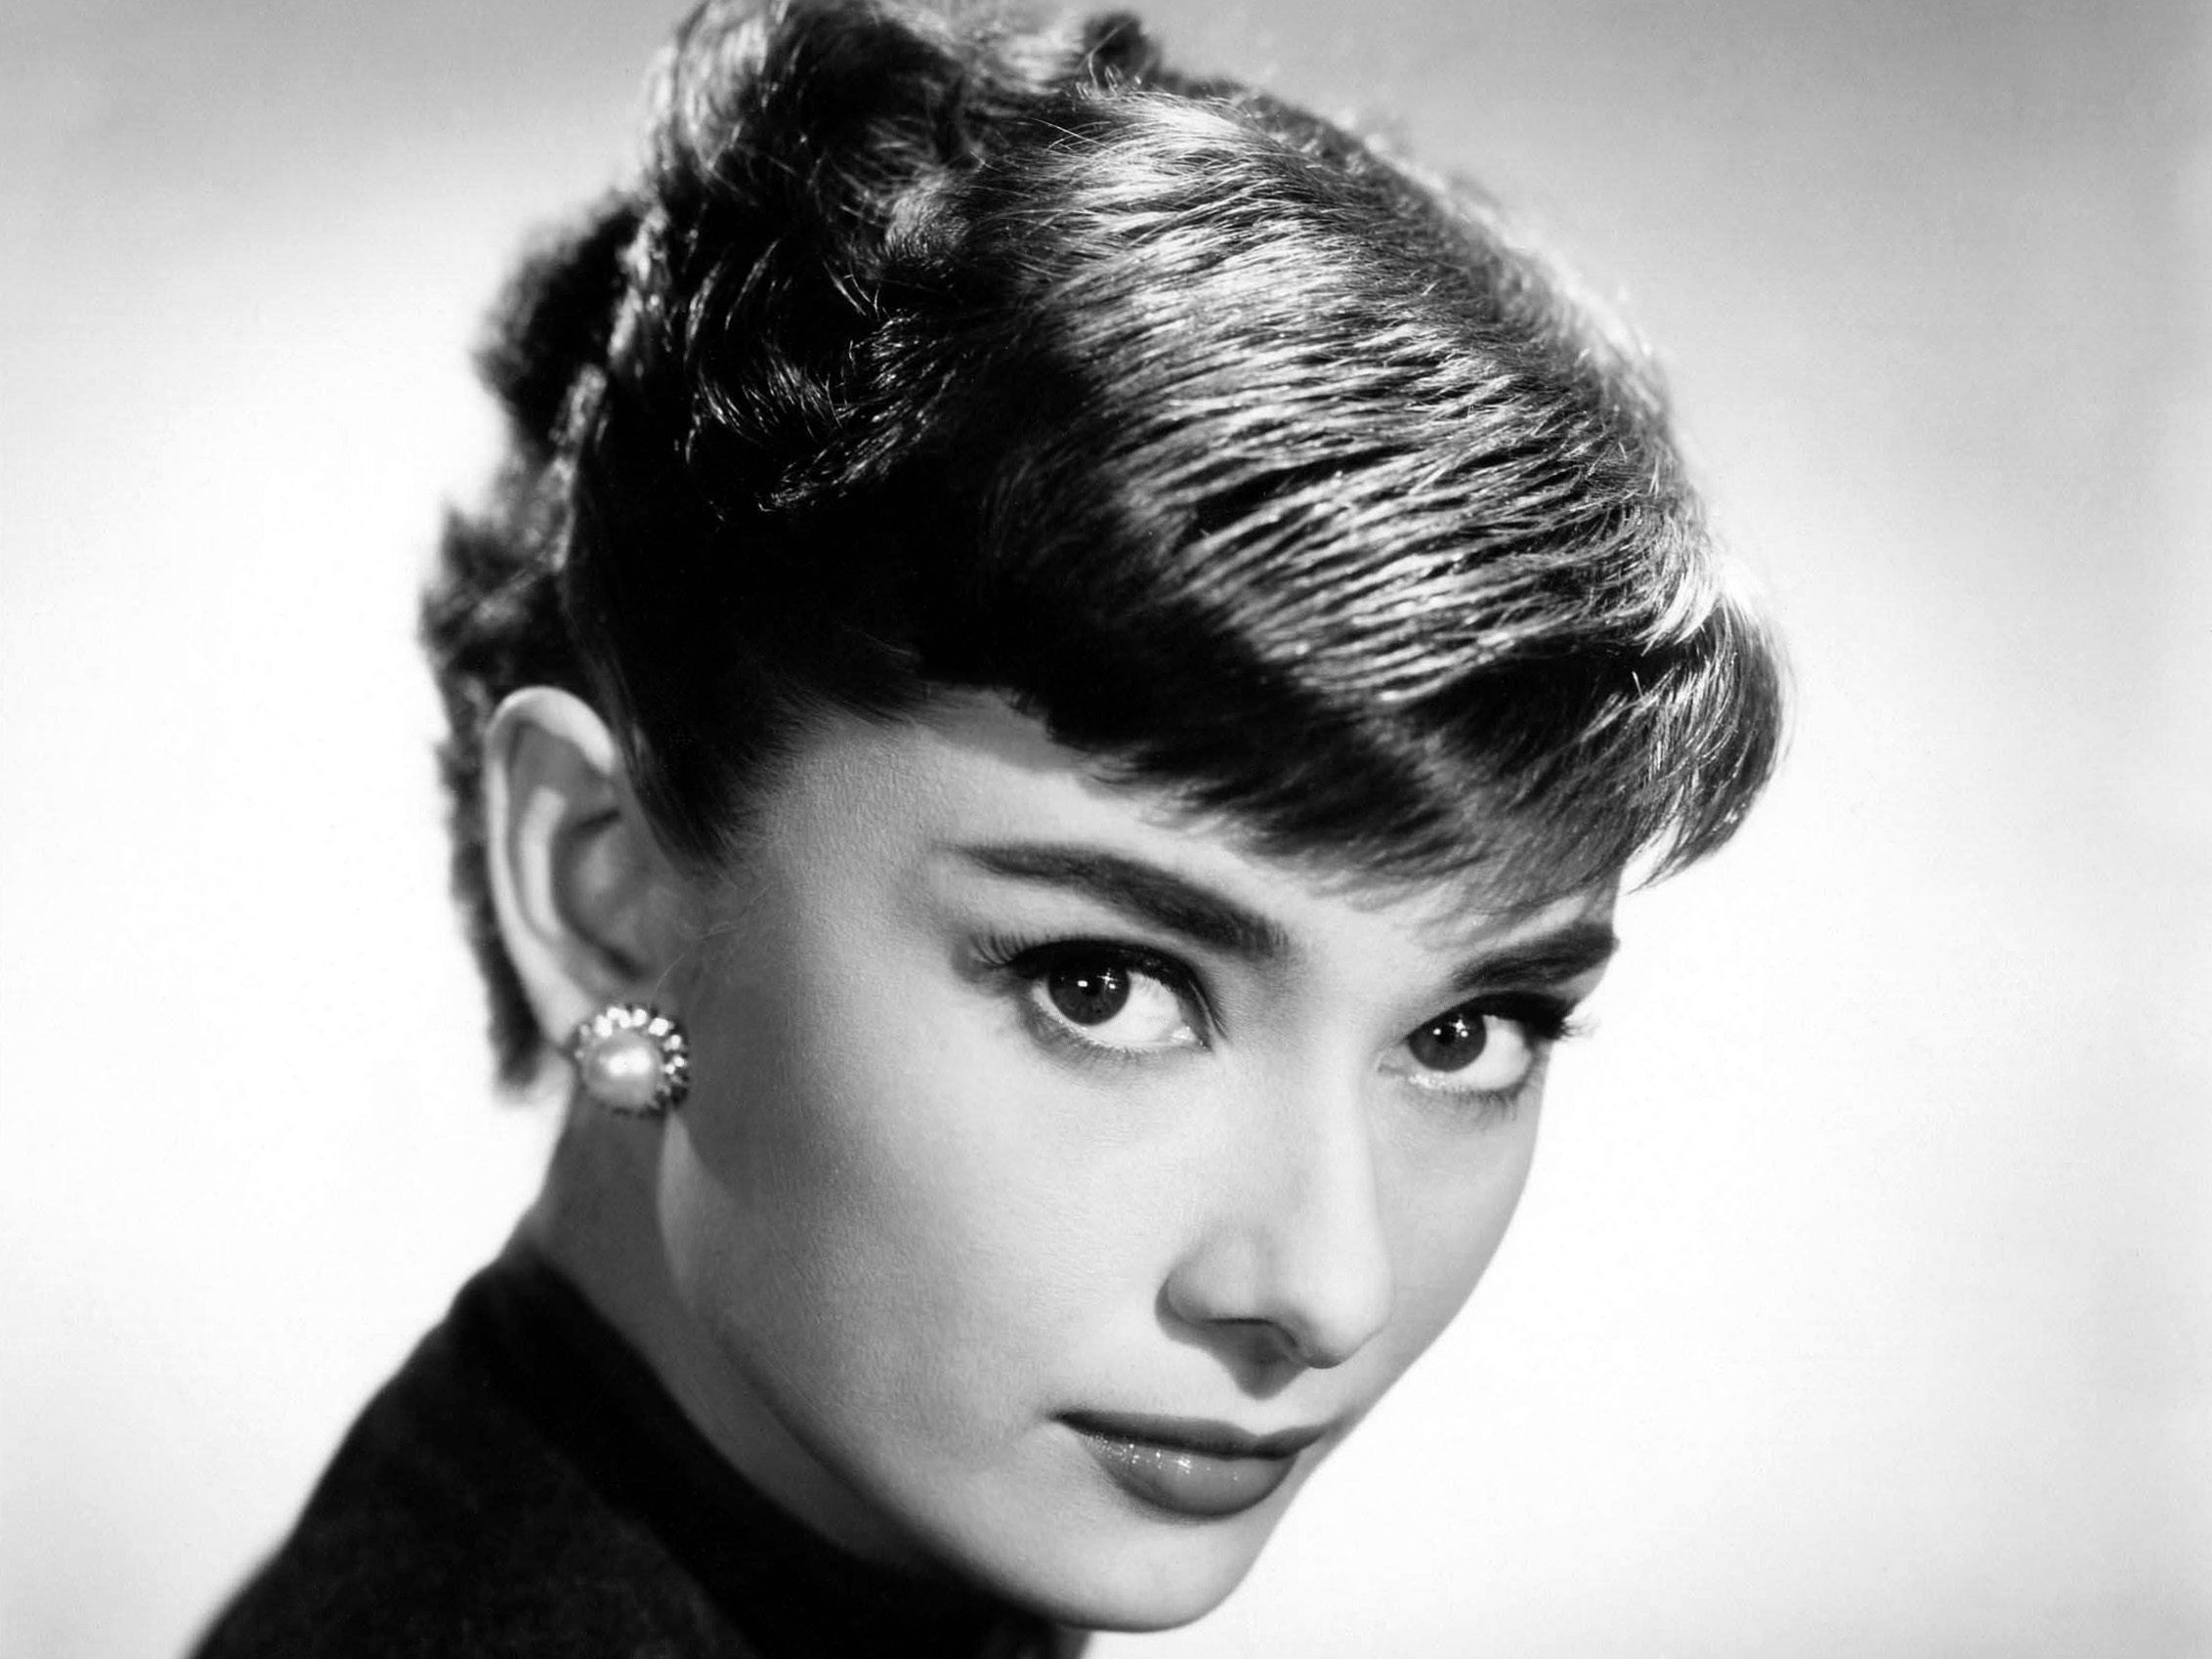 Audrey Hepburn Computer Wallpapers Desktop Backgrounds 2264x1698